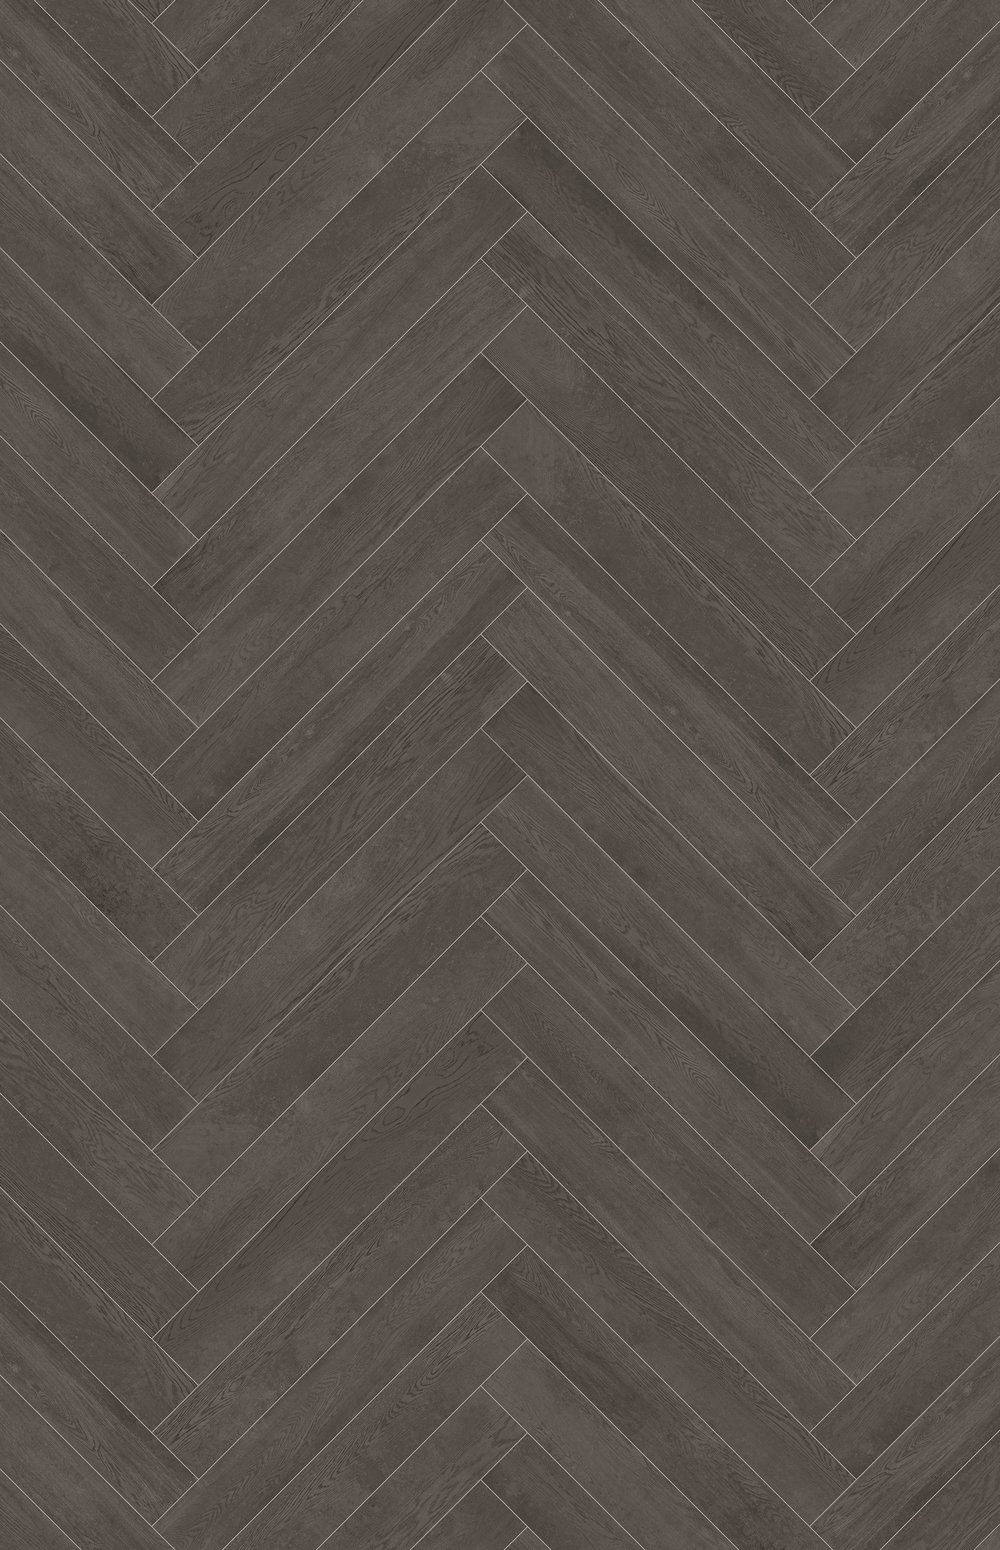 Duet DARK herringbone